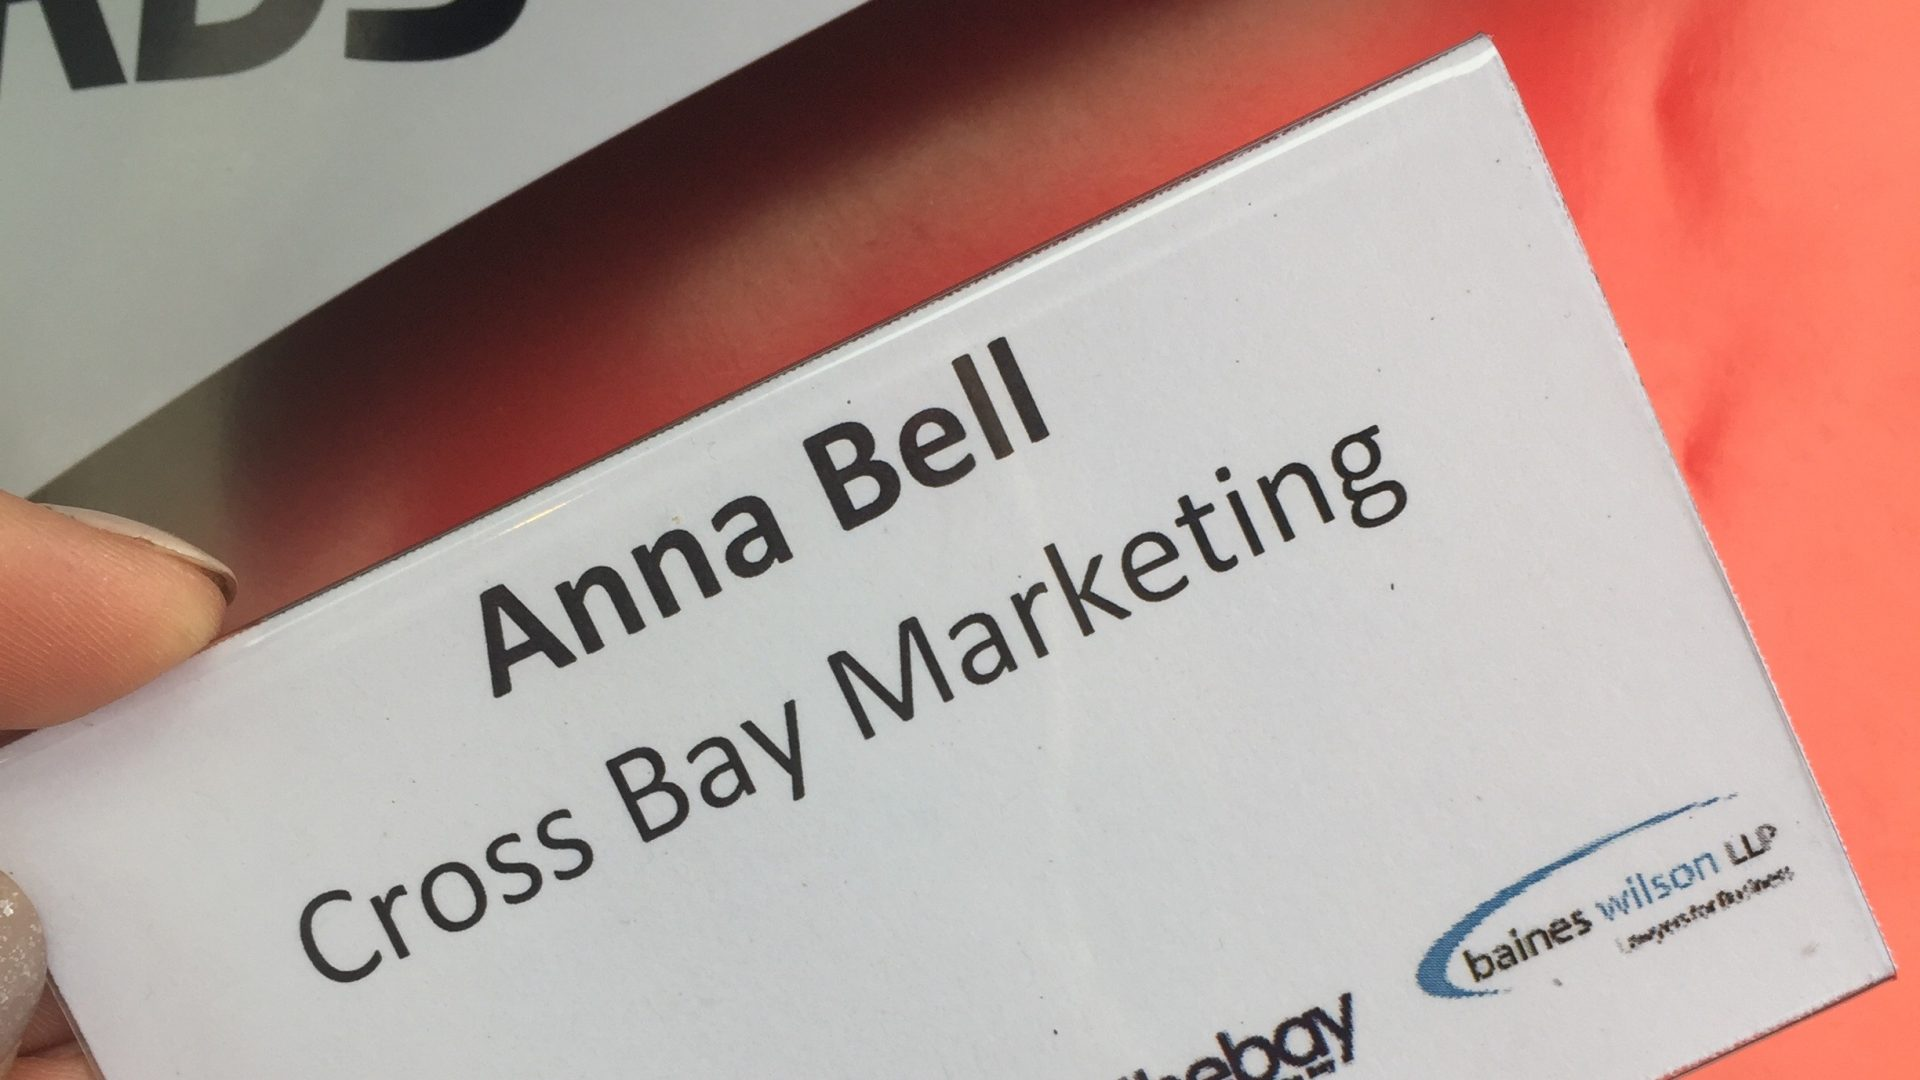 Cross Bay Marketing